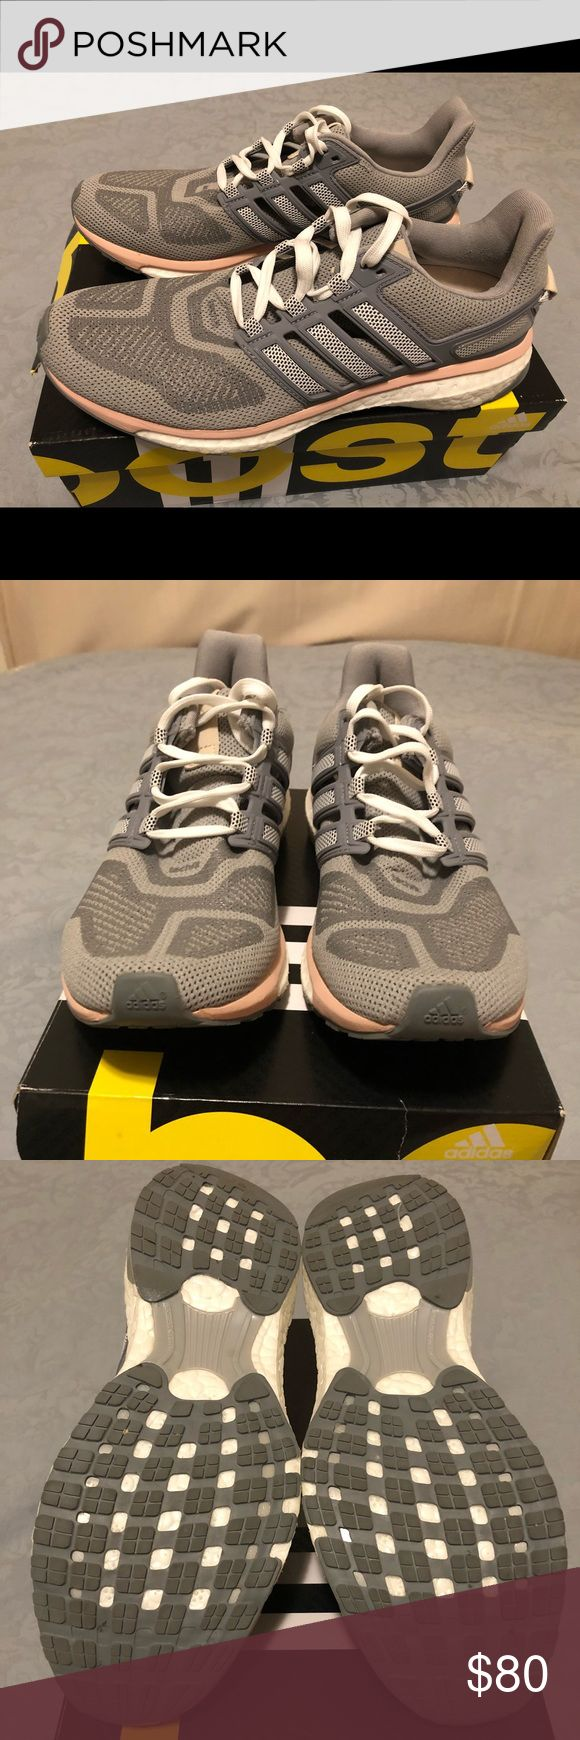 """Women's Adidas """"energy boost 3 w"""" - size 9 Worn once.  I purchased for $143.95 + tax, so my loss is your gain!  I prefer my Mizunos, so I never wear these. Great, light shoes.  Product Details The Adidas Women's Energy Boost 3 Running Shoes blend a flexible, adaptive techfit® upper with the plush, energy-filled ride of boost™. The result is a lightweight, neutral running shoe that will invigorate runners of every level, at any distance.  techfit® upper is engineered for natural, flexible…"""